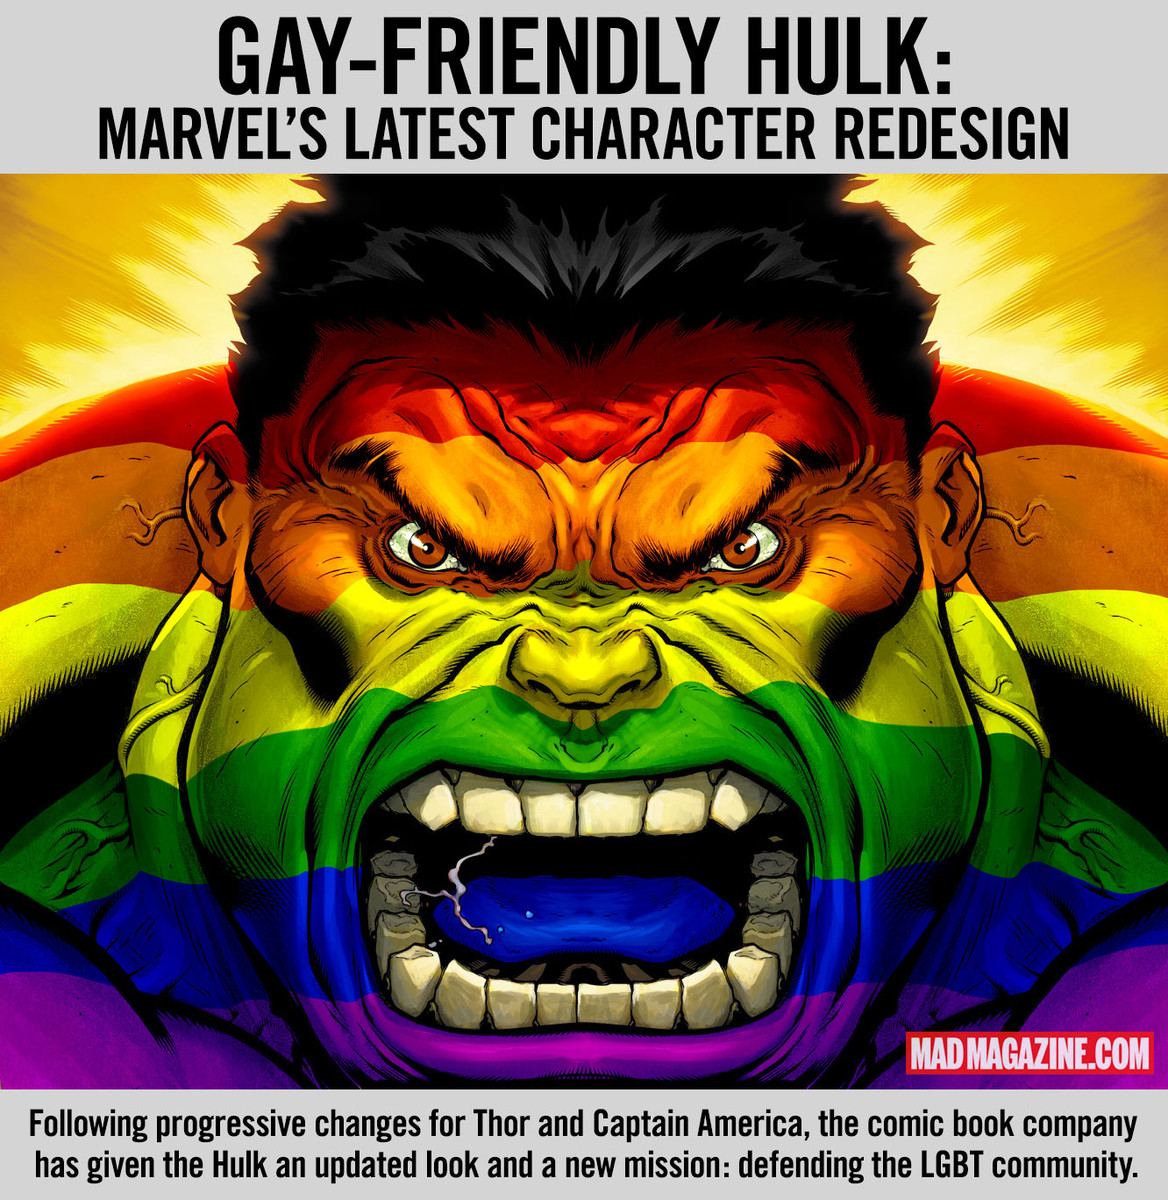 mad magazine the idiotical Marvel Unveils LGBT-Friendly Hulk Idiotical Originals, San Diego Comic-Con, Marvel Comics, Marvel, Captain American, Thor, Iron Man, Hulk, The Incredible Hulk, LGBT, Gay Rights, Gay Pride, Famous Honduran Bed & Breakfasts